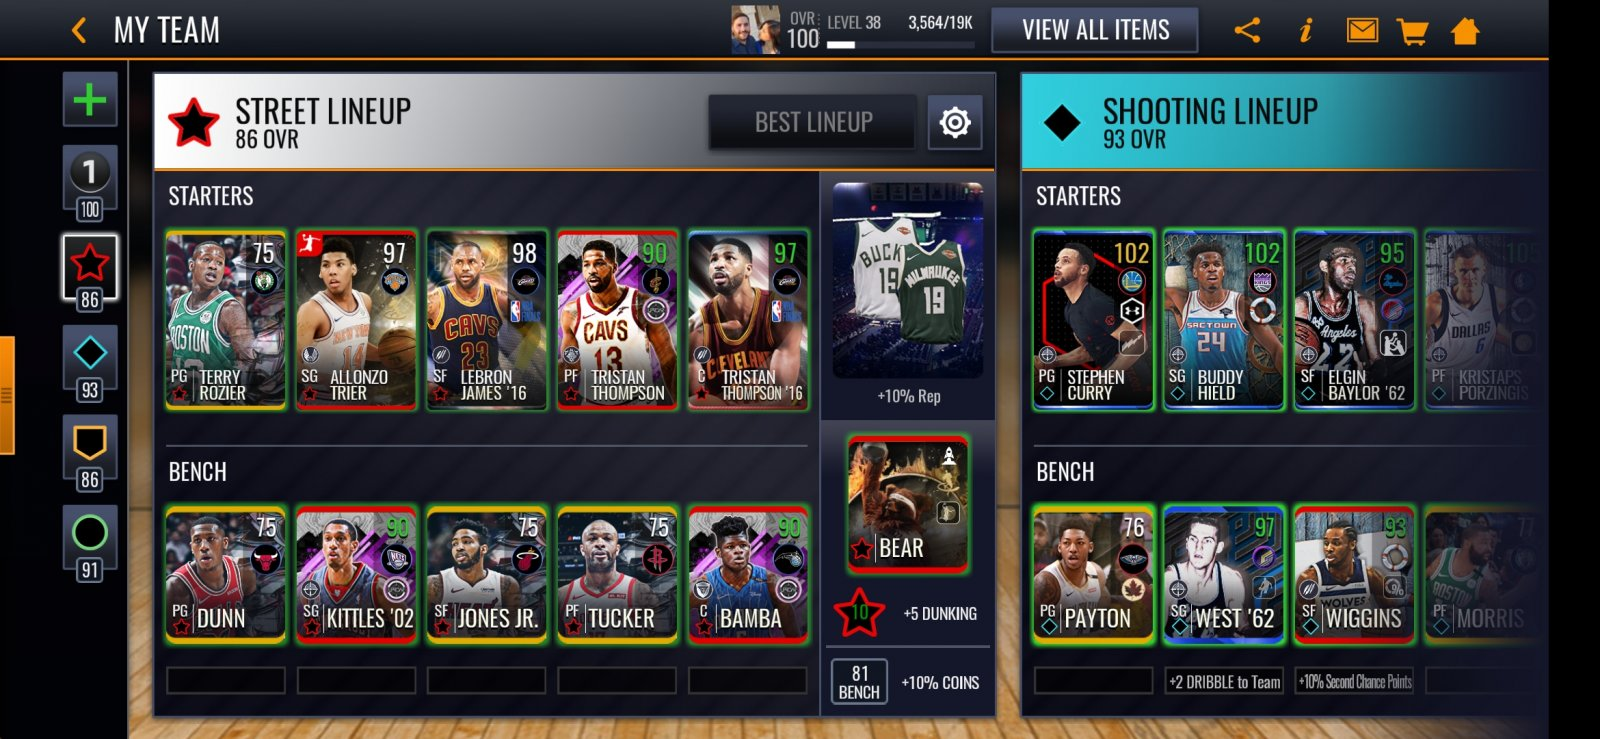 Screenshot_20190606_200746_com.ea.gp.nbamobile.jpg